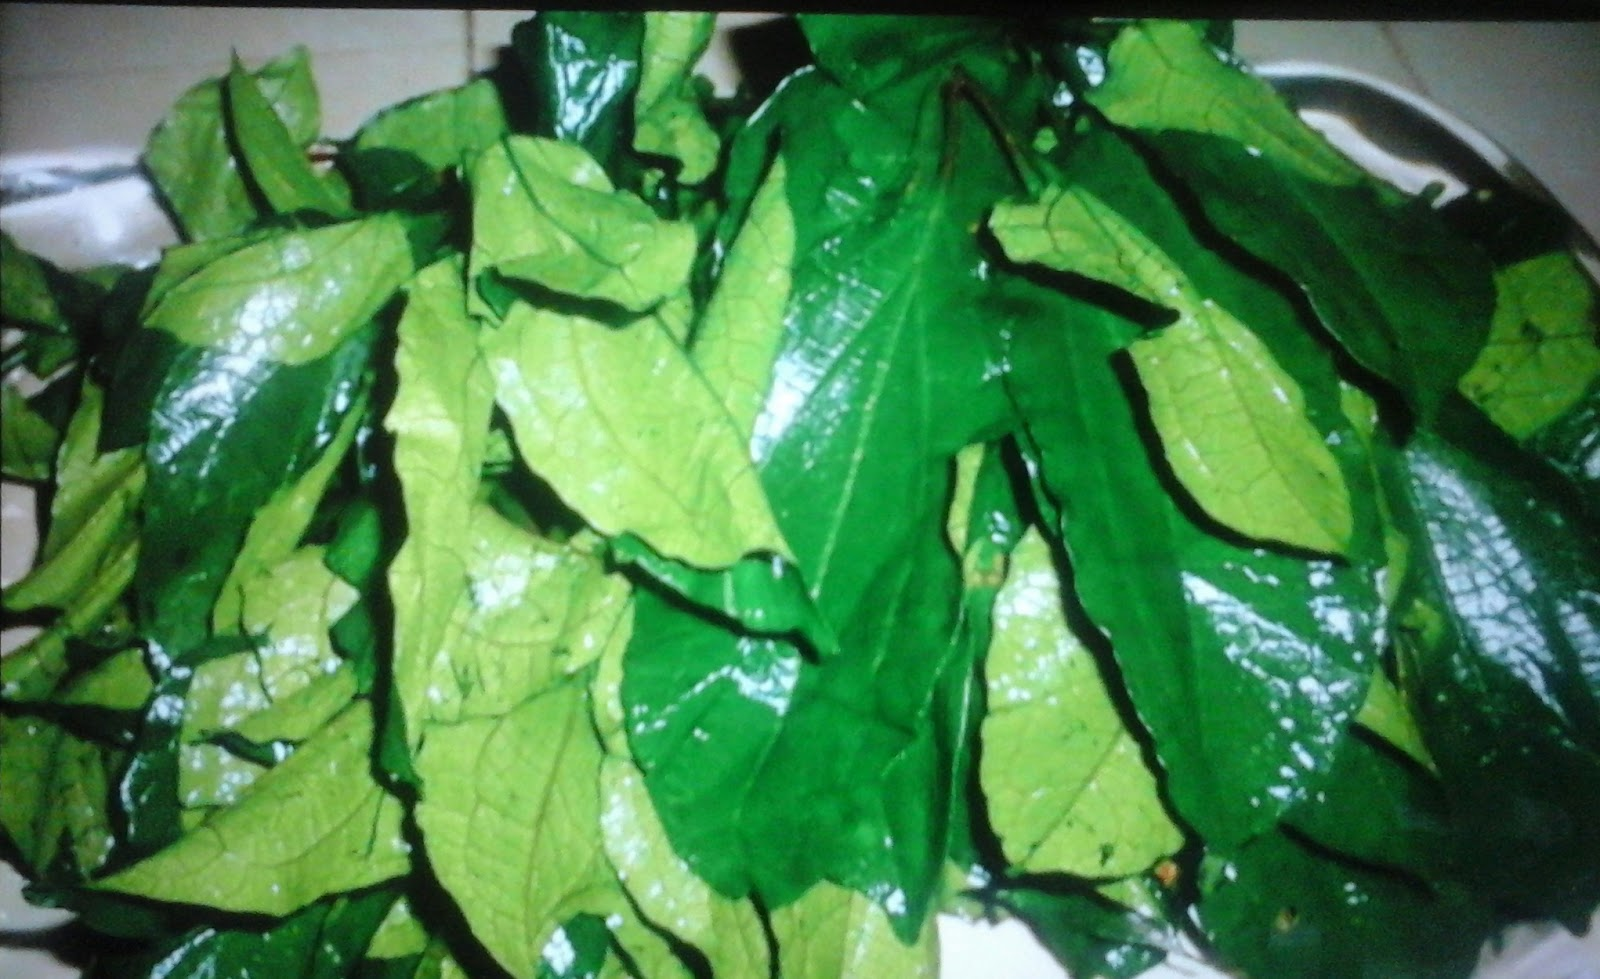 How To Start Ugu Farming (Fluted Pumpkin) Business In Nigeria And Make The Best Income In One Month